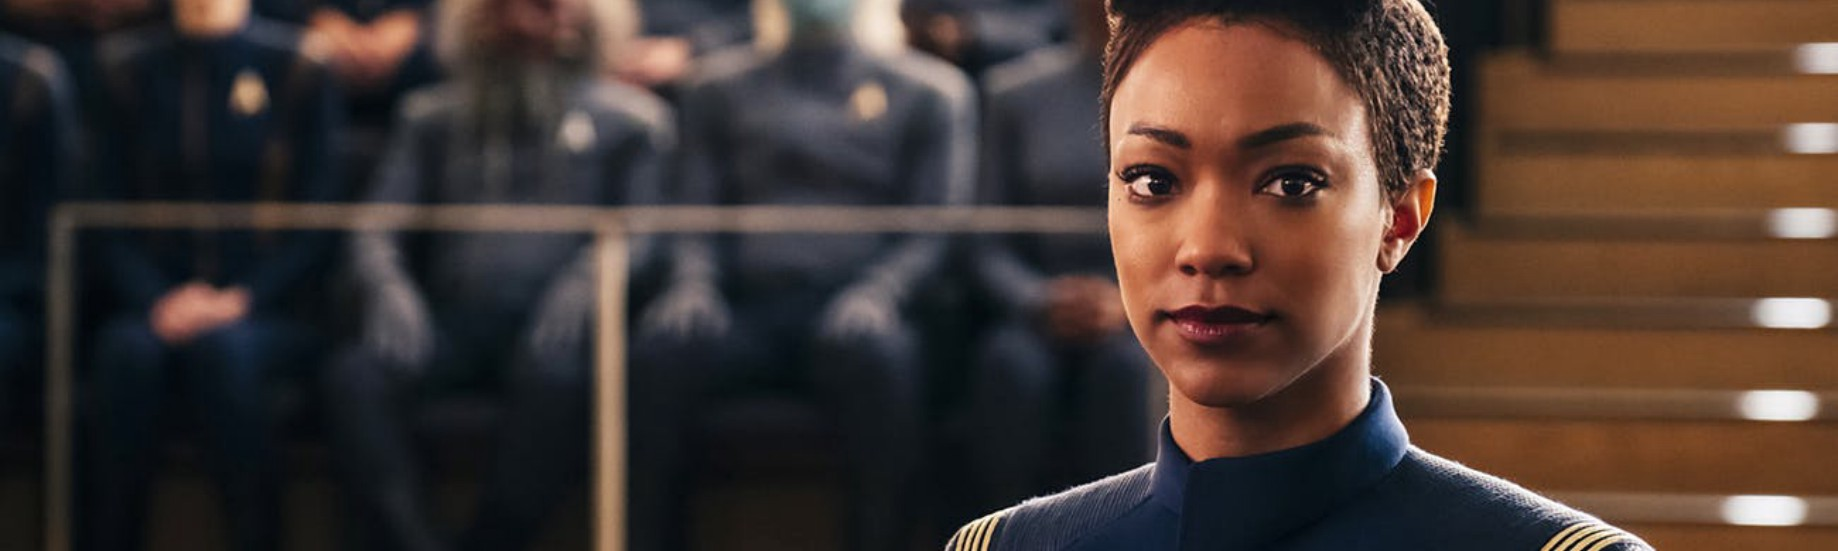 """Why Michael Burnham is Great and """"Star Trek: Discovery"""" is Not"""